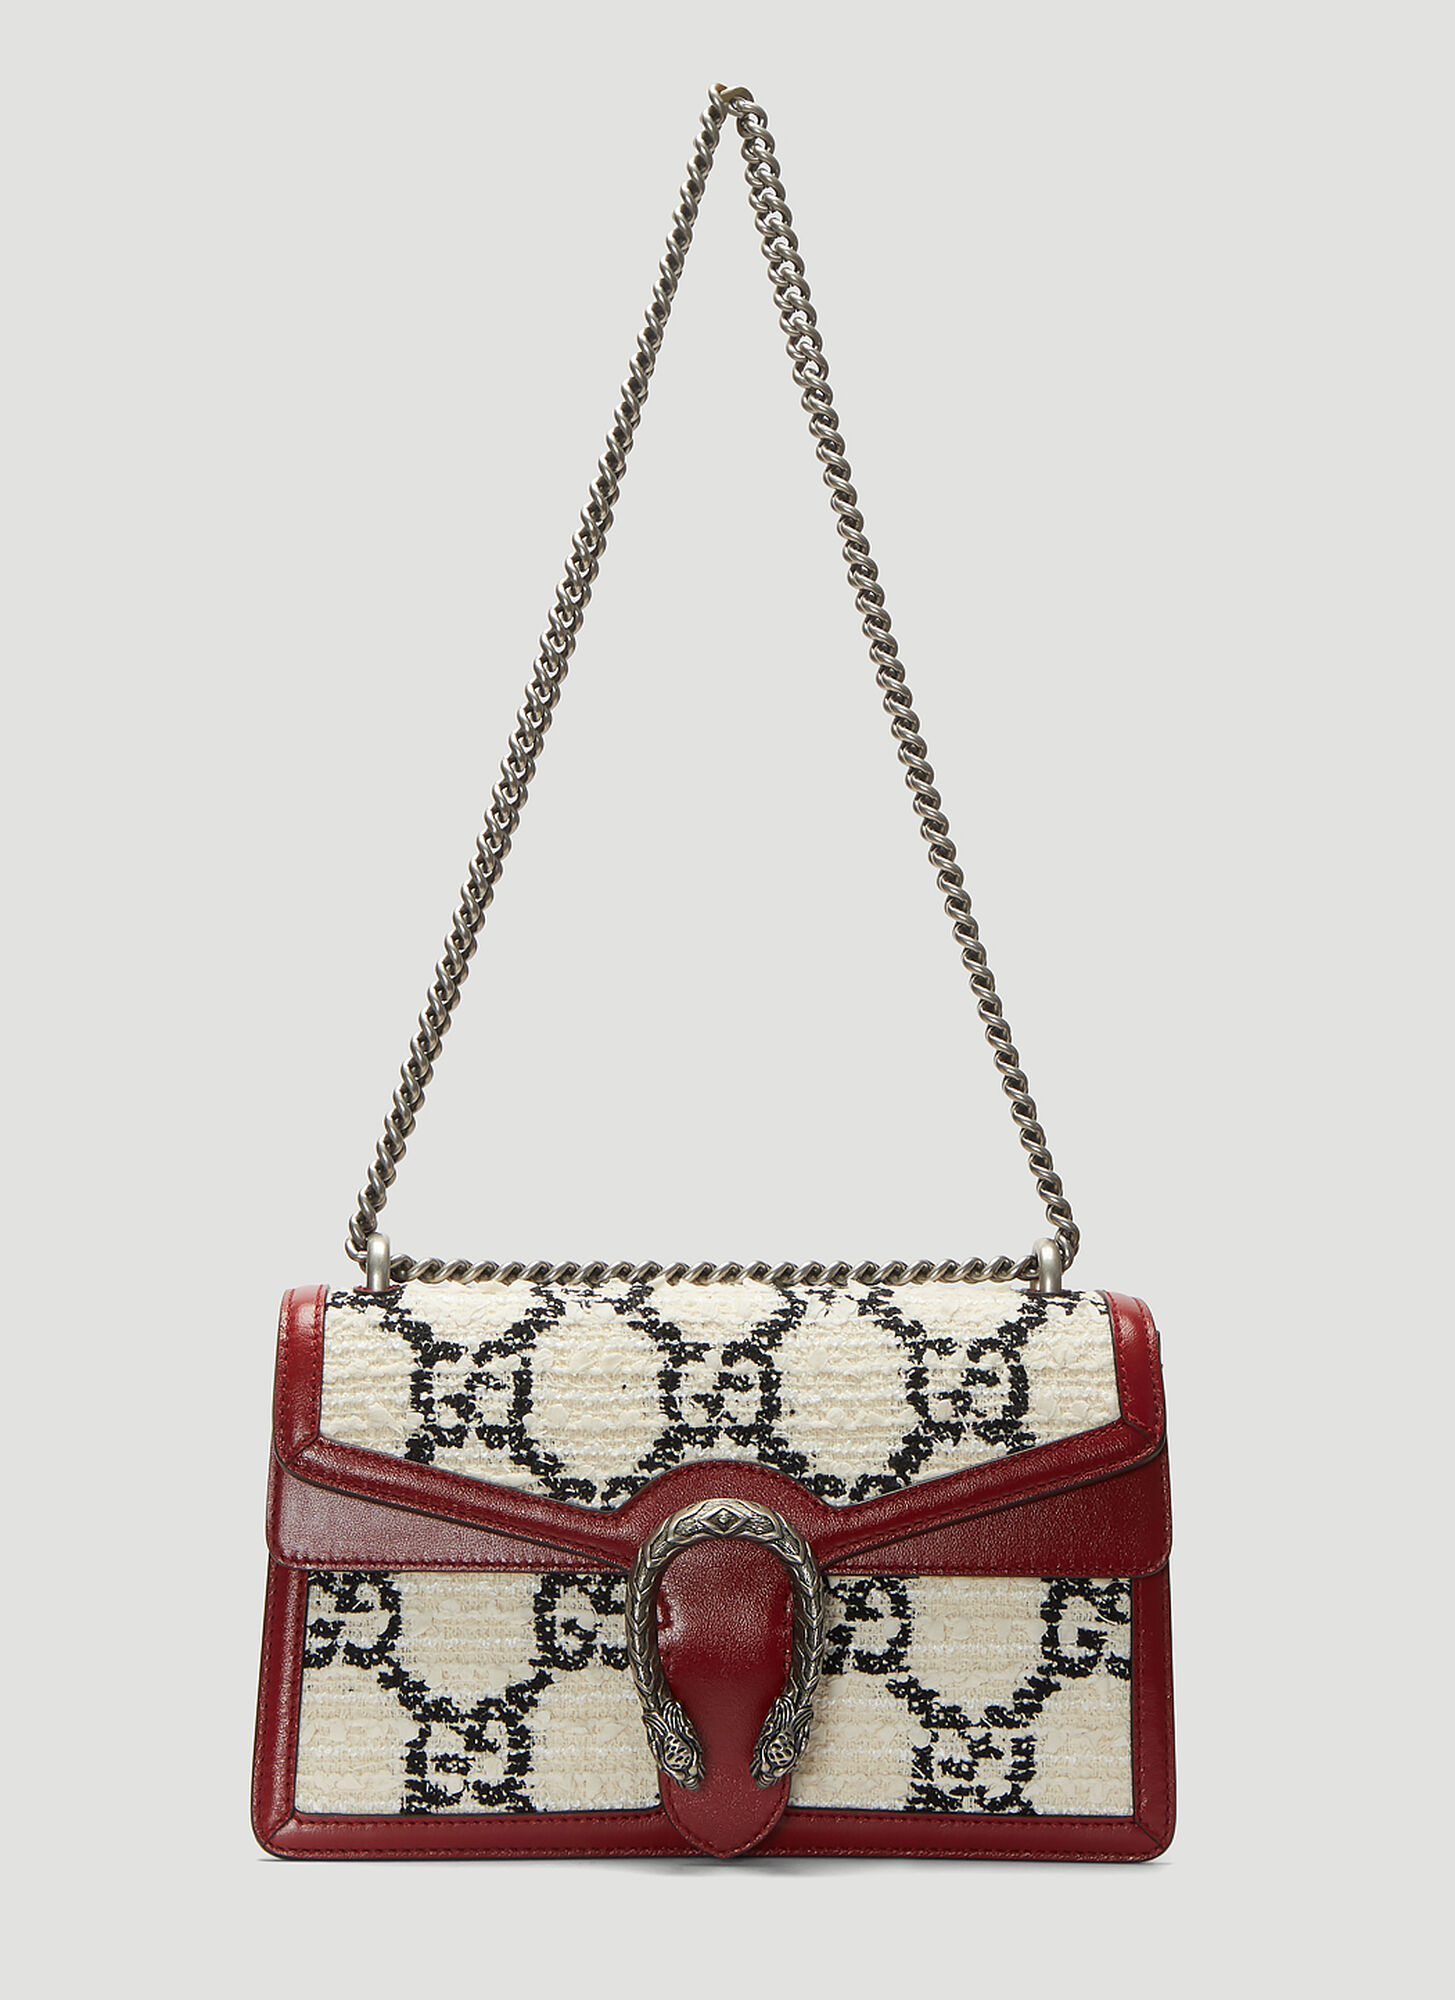 Gucci Dionysus Tweed Shoulder Bag in Cream